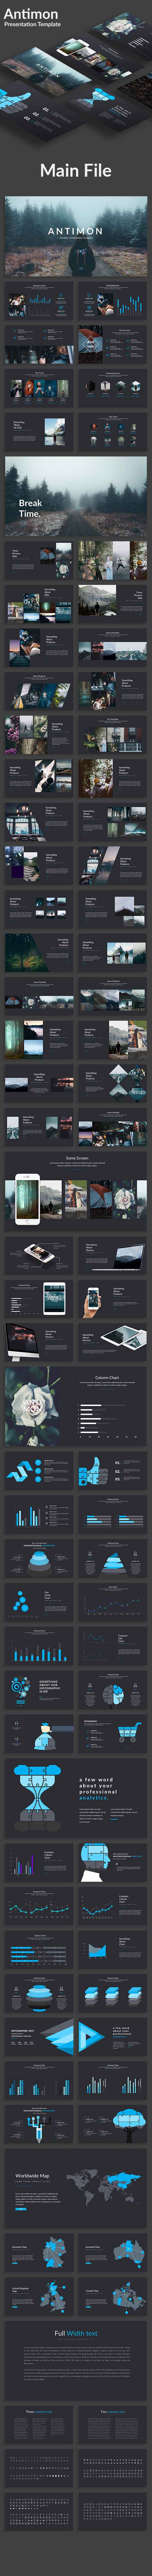 Antimon Creative Google Slide Template - Google Slides Presentation Templates